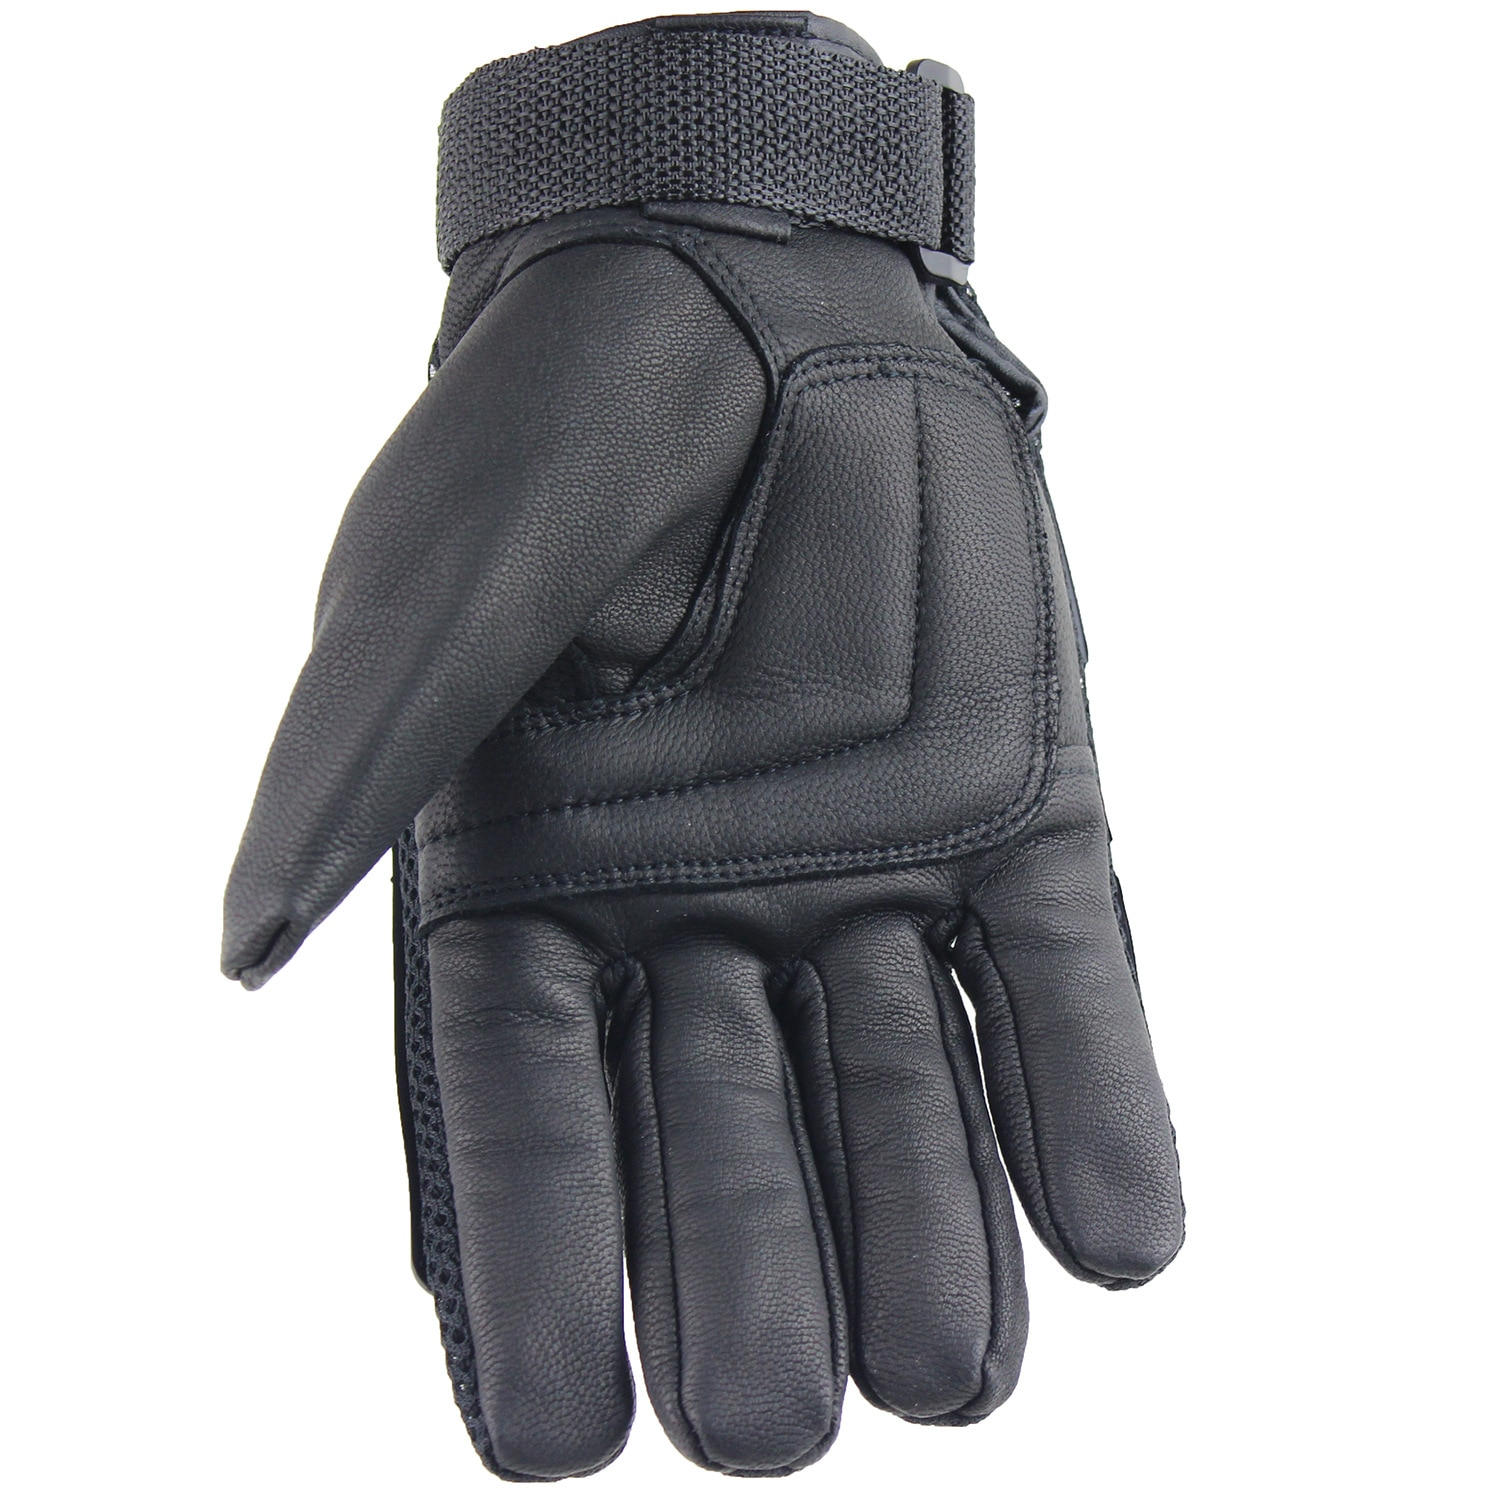 Outdoor Full Finger Tactical Gloves Motorcycle Riding Mountaineering Speed Down Personal Protective Finge enlarge